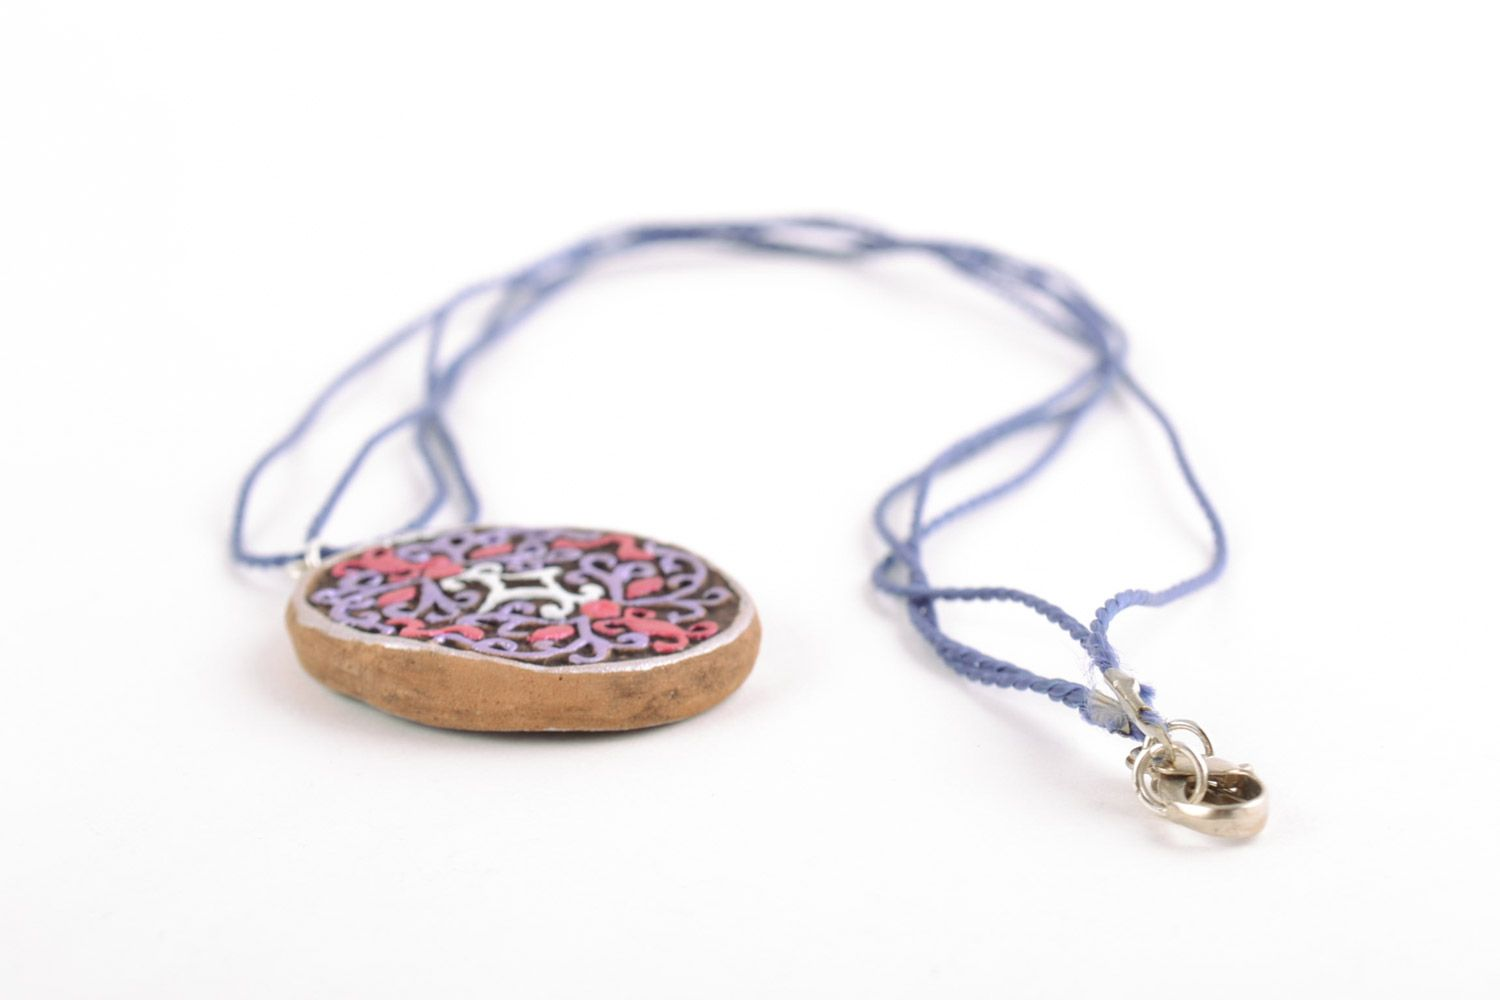 Women's homemade painted clay neck pendant of oval shape photo 4